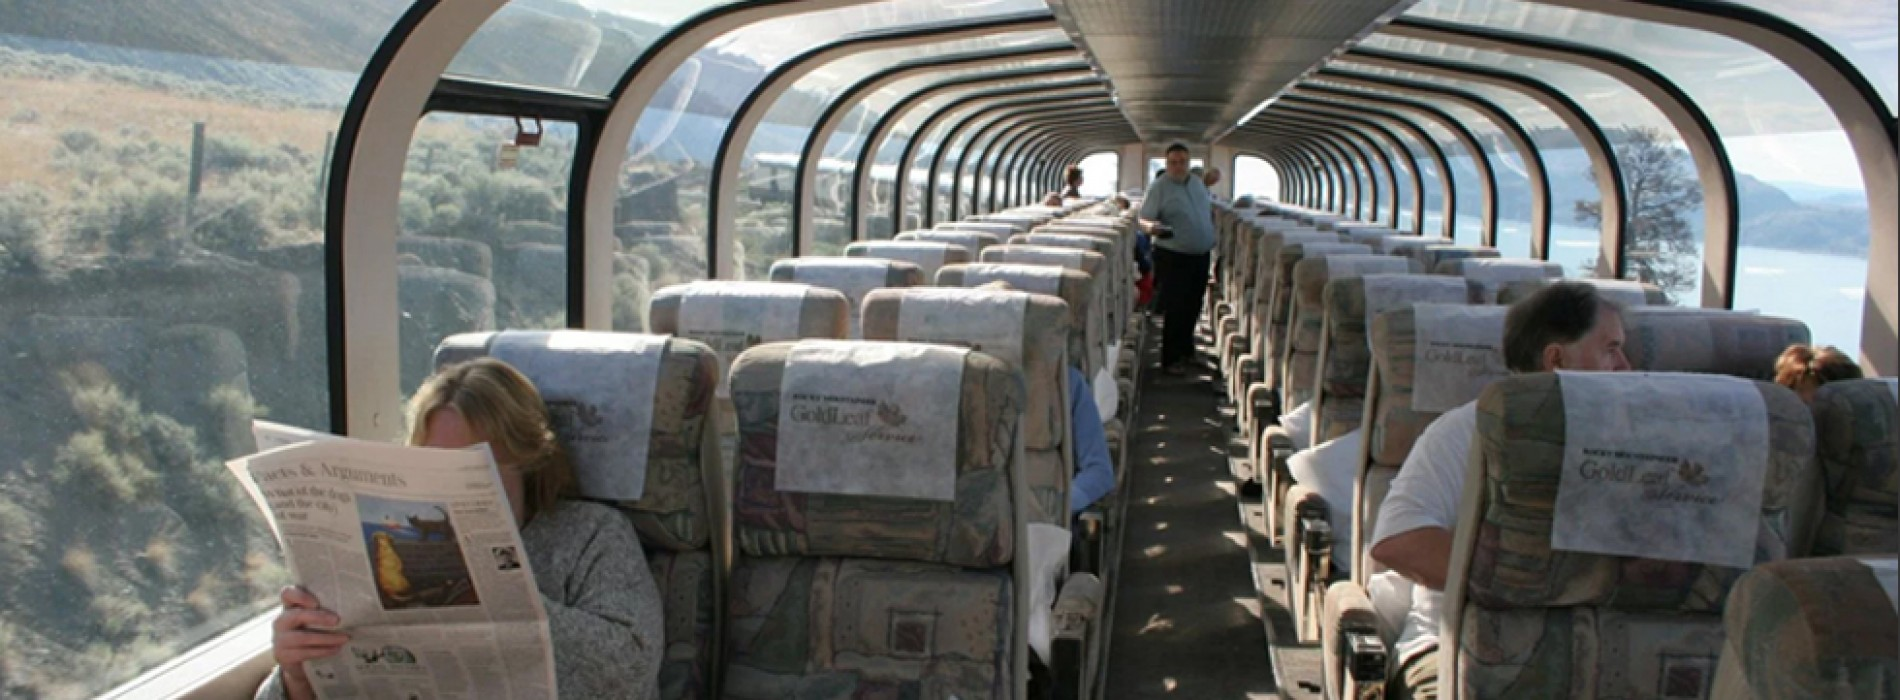 Indian trains to get glass ceilings